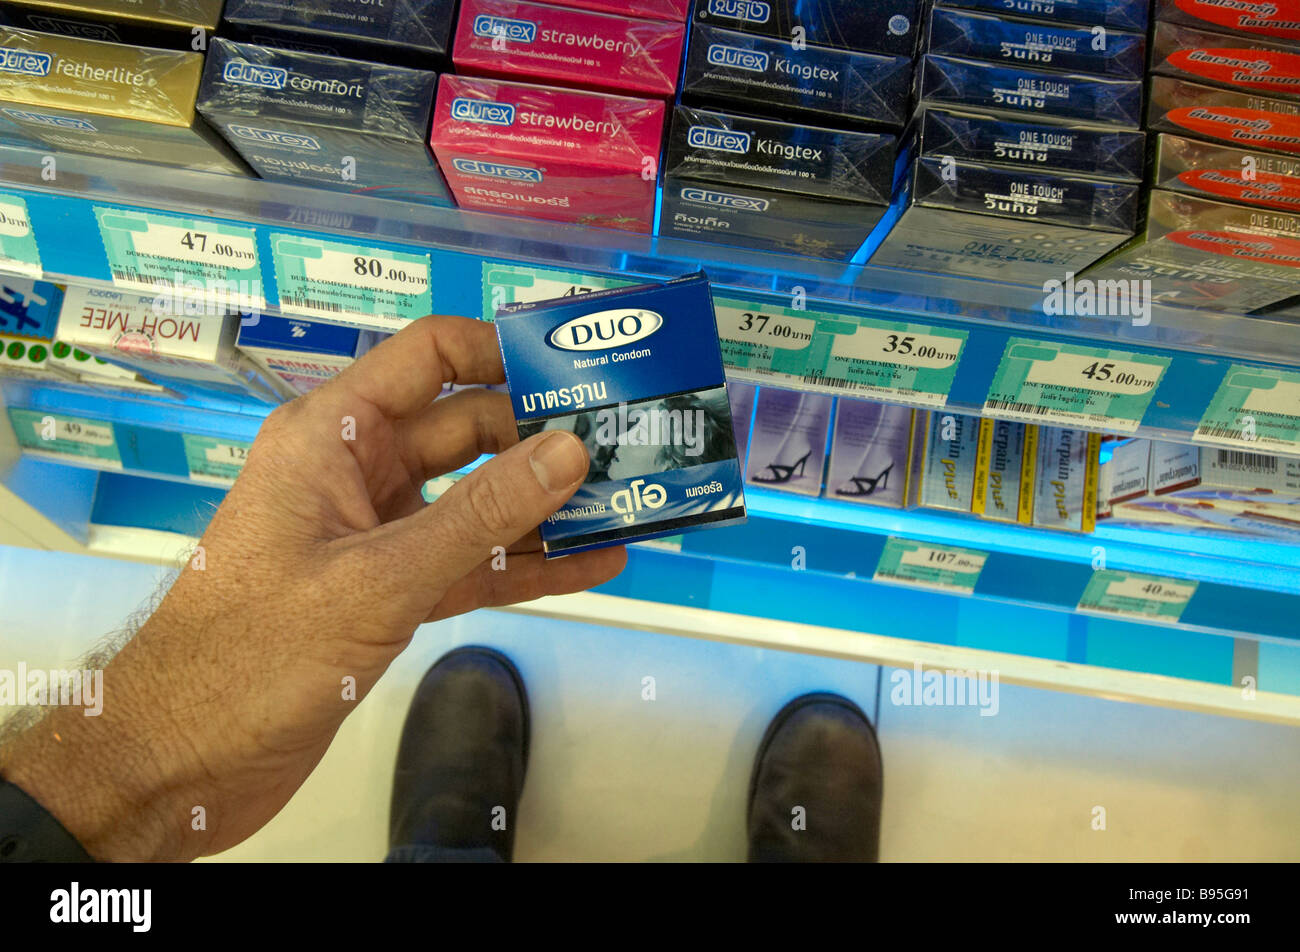 The Easiest Way to Buy Condoms The Easiest Way to Buy Condoms new images